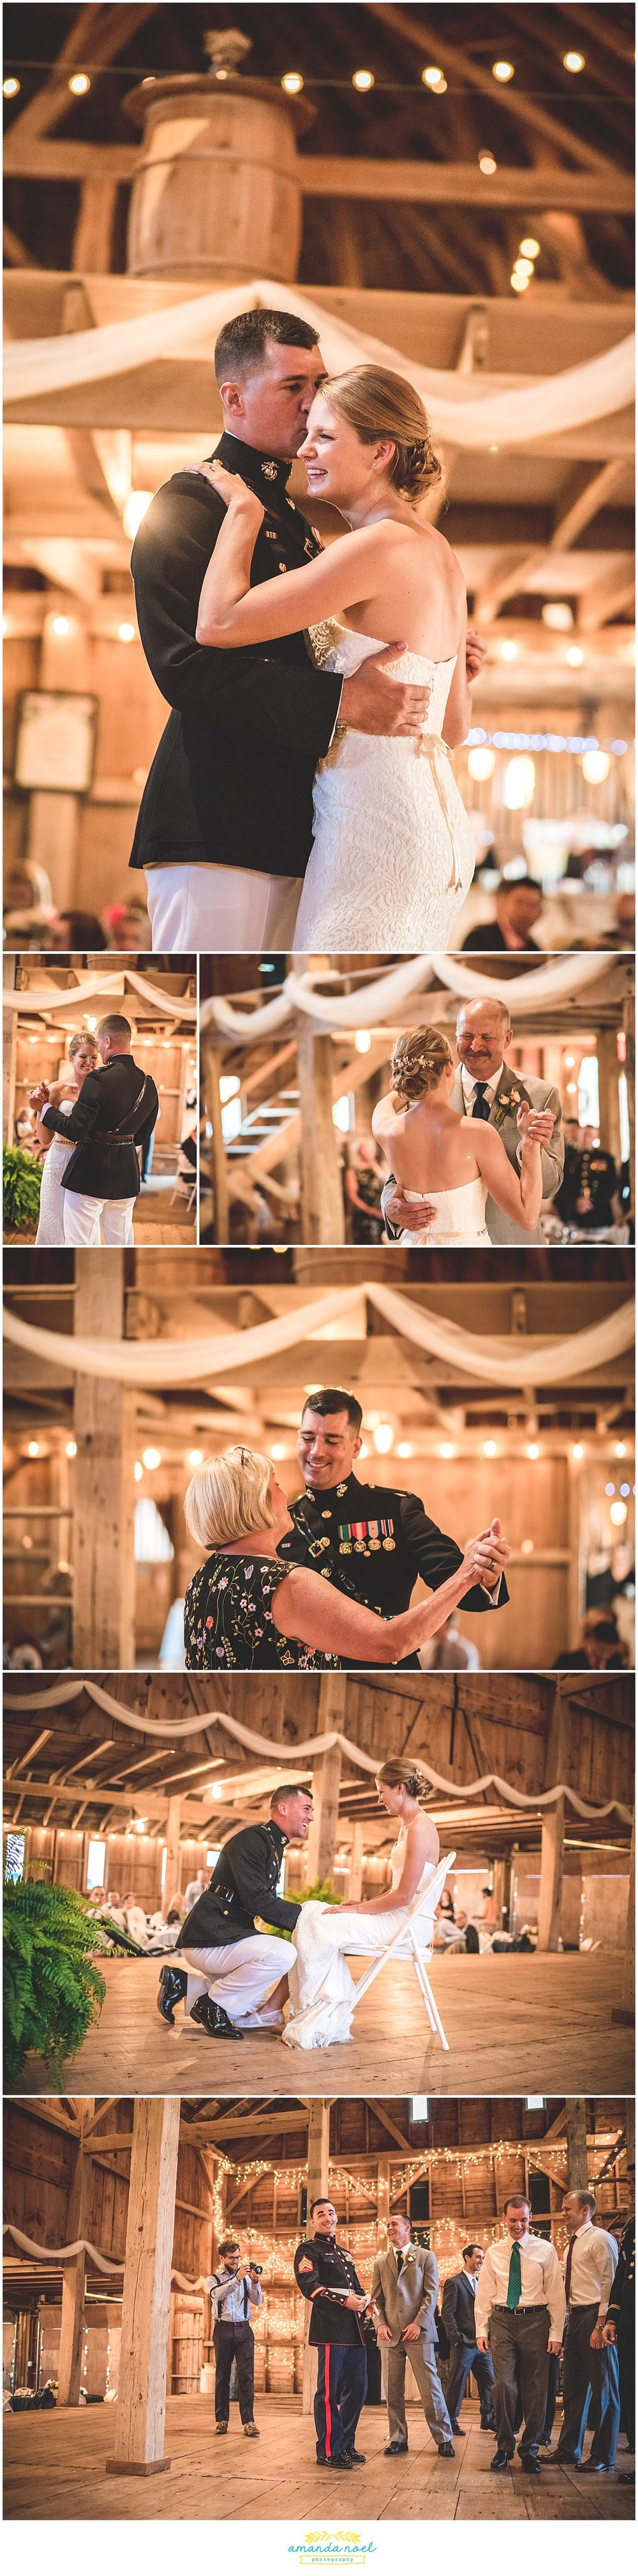 first dance in barn